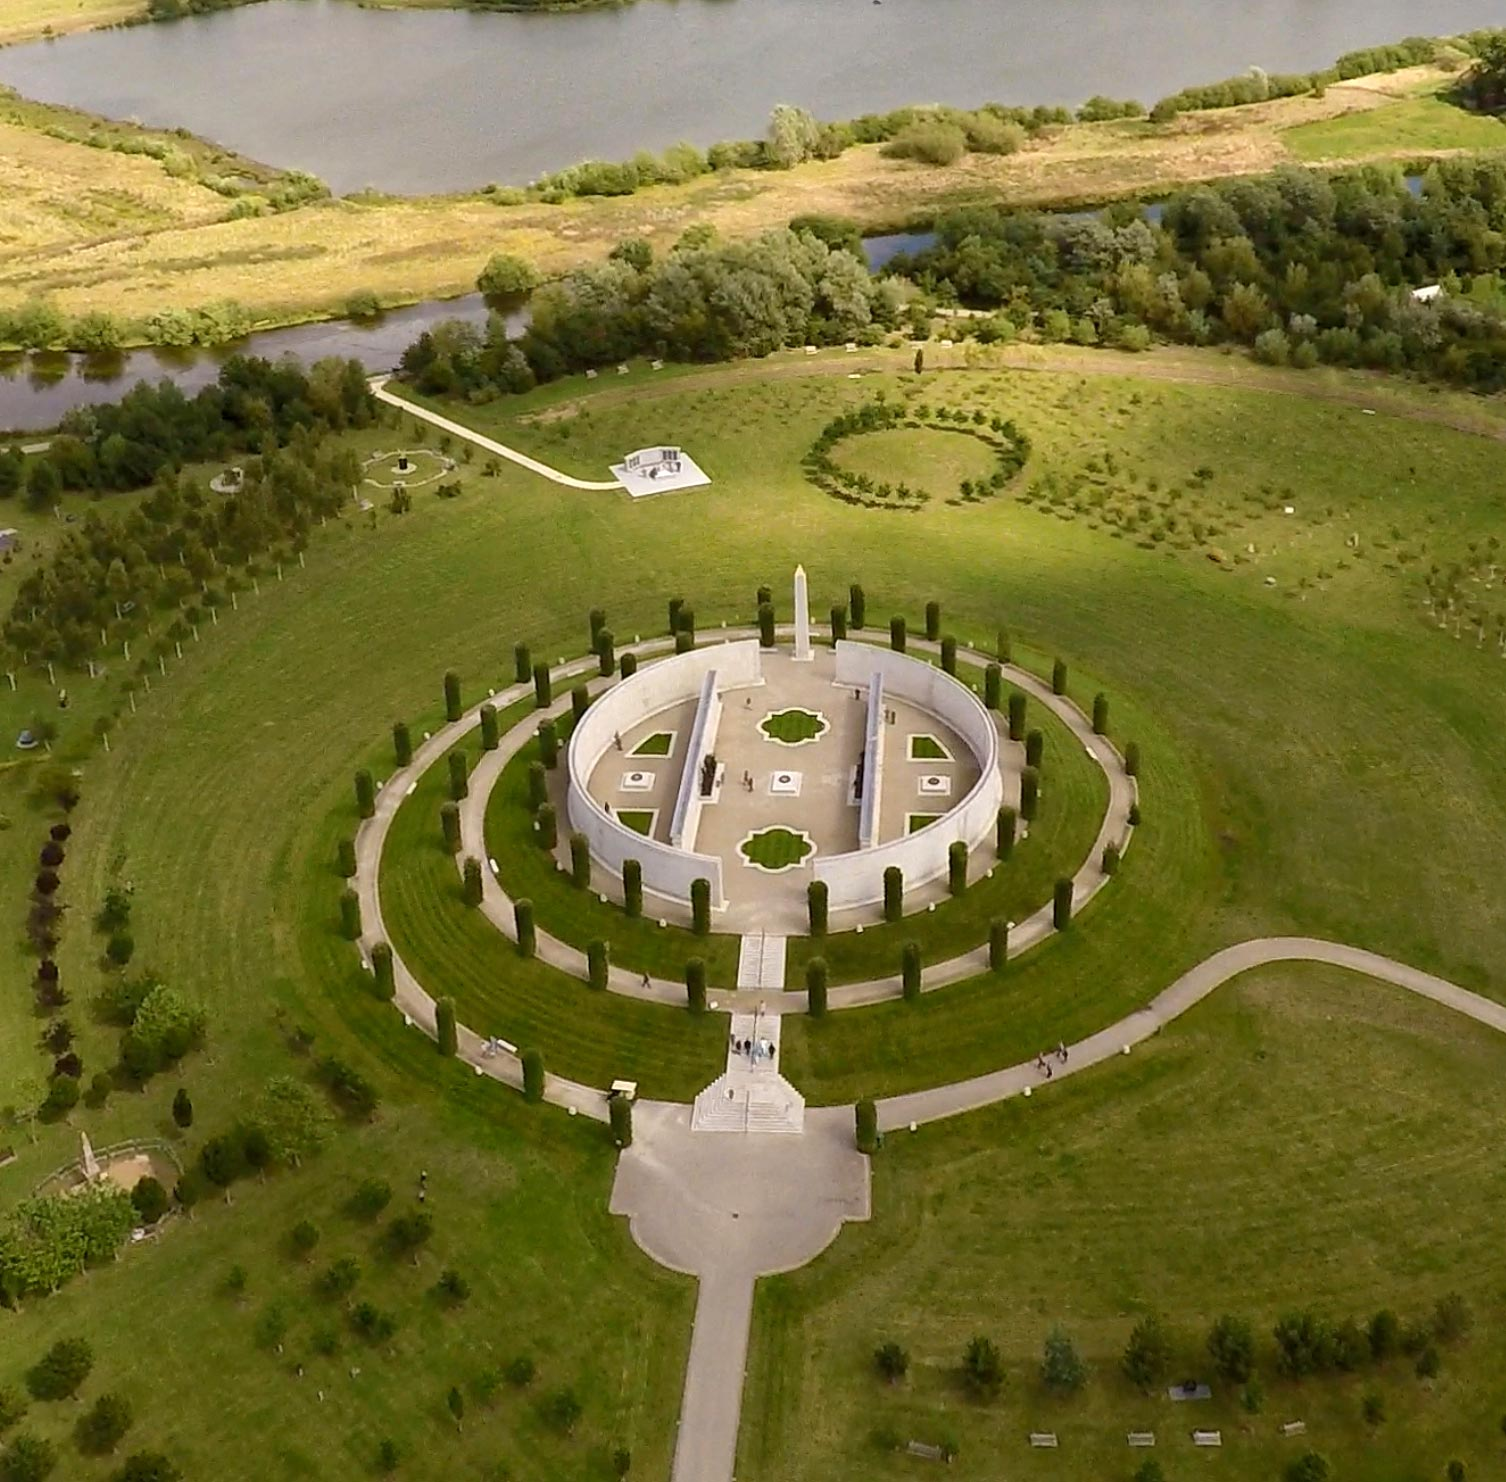 Roger Bullivant Limited - National Memorial Arboretum Aerial View